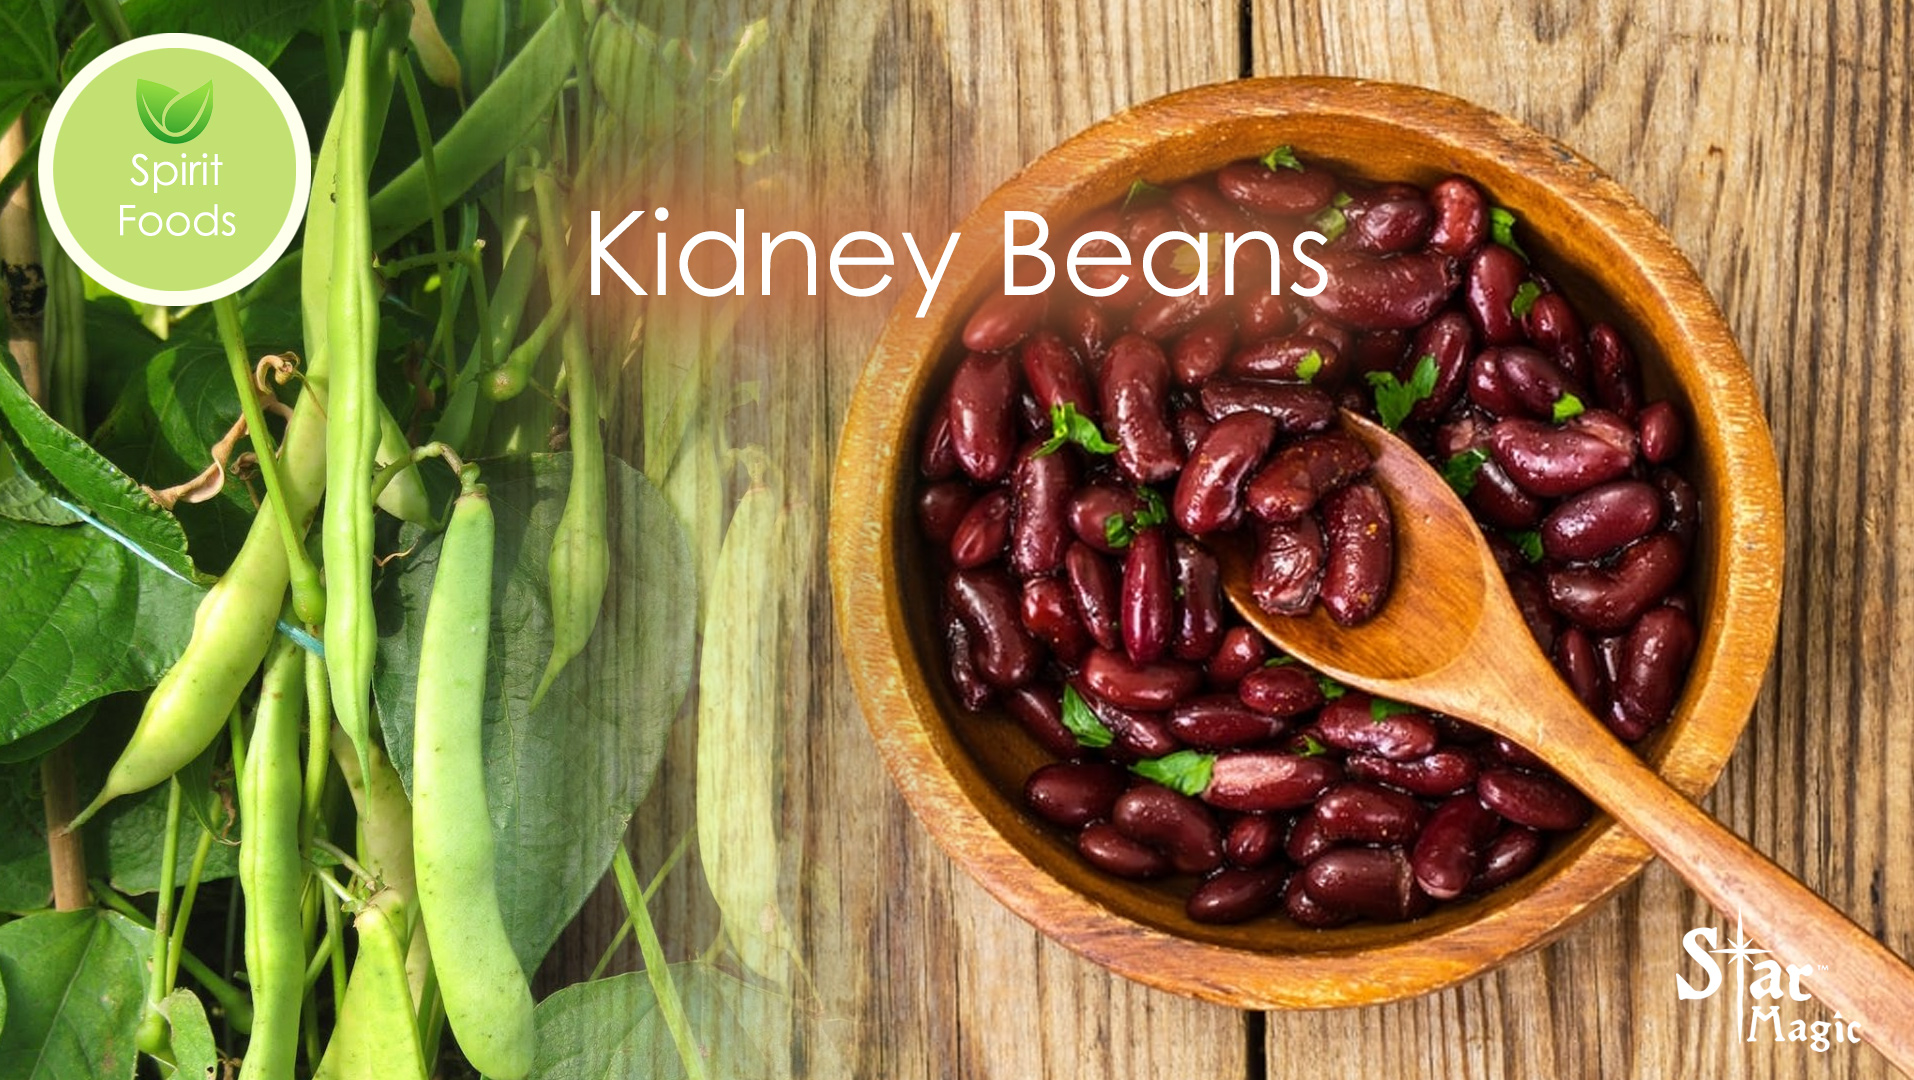 Spirit Food – Kidney Beans